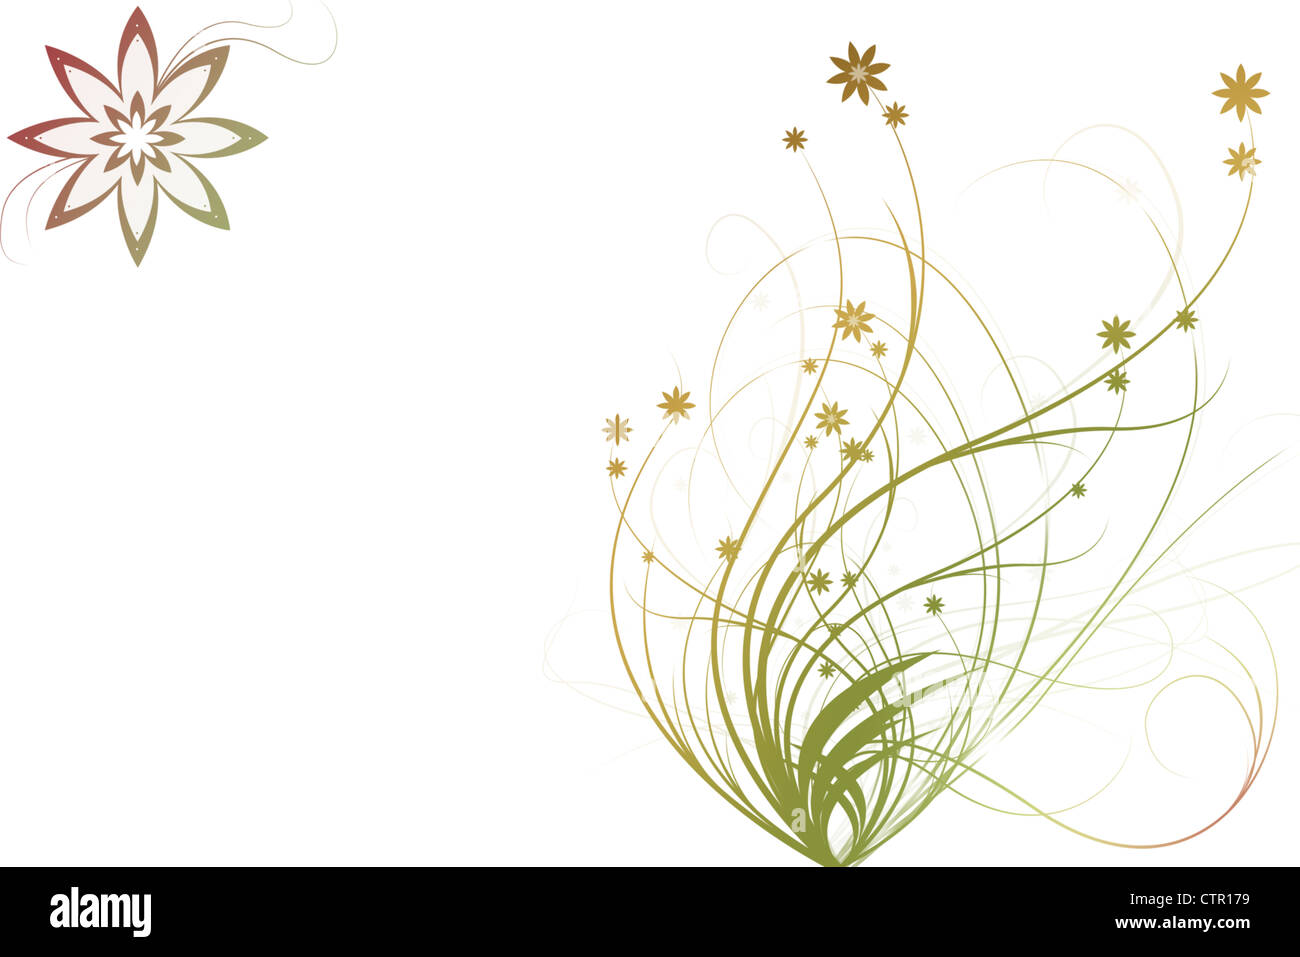 Beautiful illustrated flower background design with space for your text - Stock Image